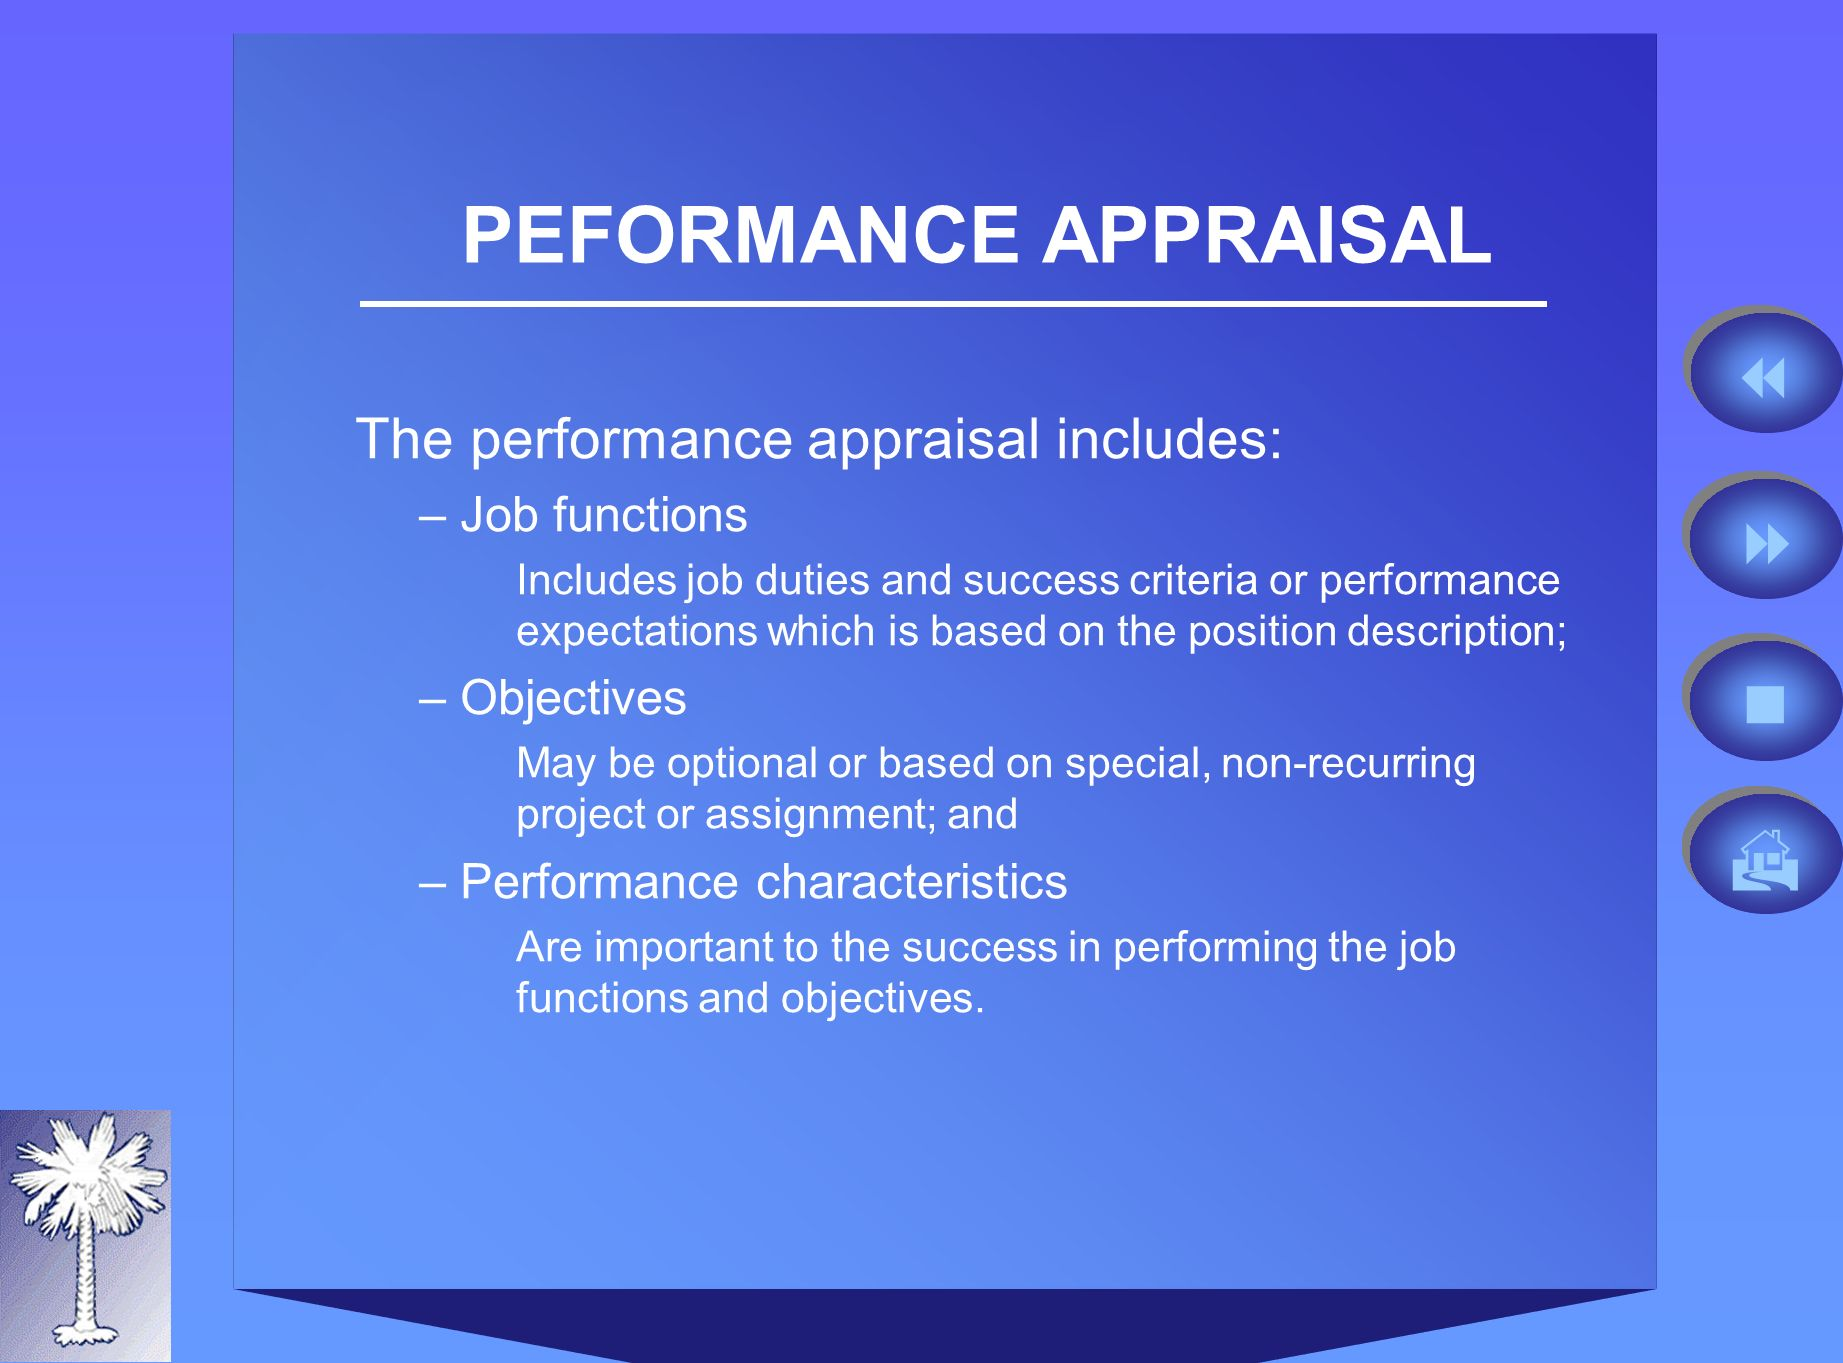 PEFORMANCE APPRAISAL The performance appraisal includes: –Job functions Includes job duties and success criteria or performance expectations which is based on the position description; –Objectives May be optional or based on special, non-recurring project or assignment; and –Performance characteristics Are important to the success in performing the job functions and objectives.